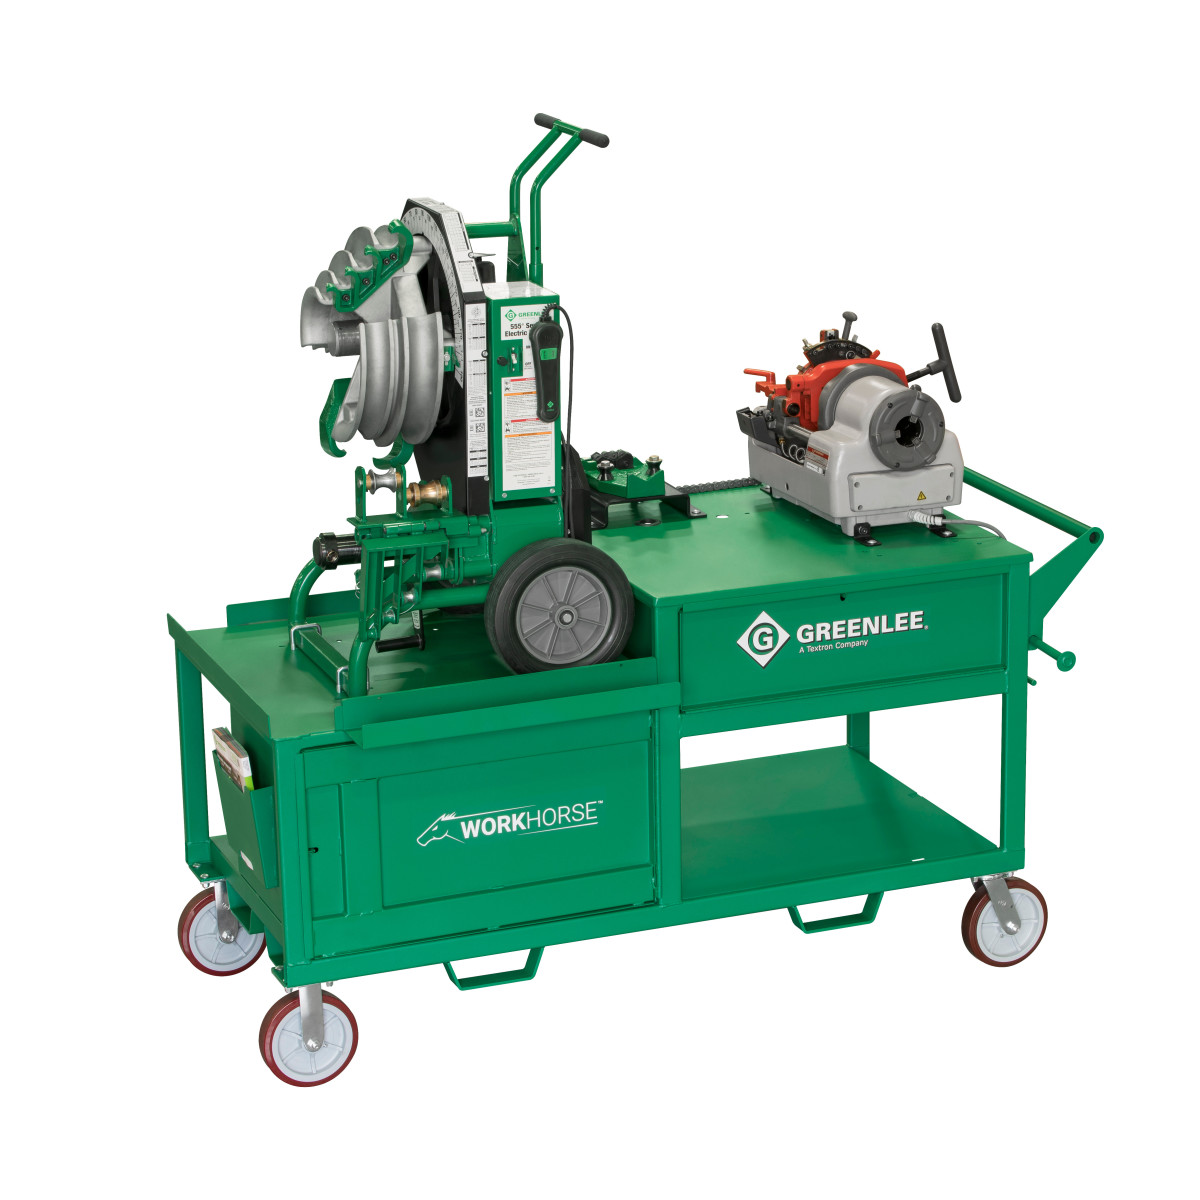 Greenlee WK100 WORKHORSE BENDING THREADING STATION